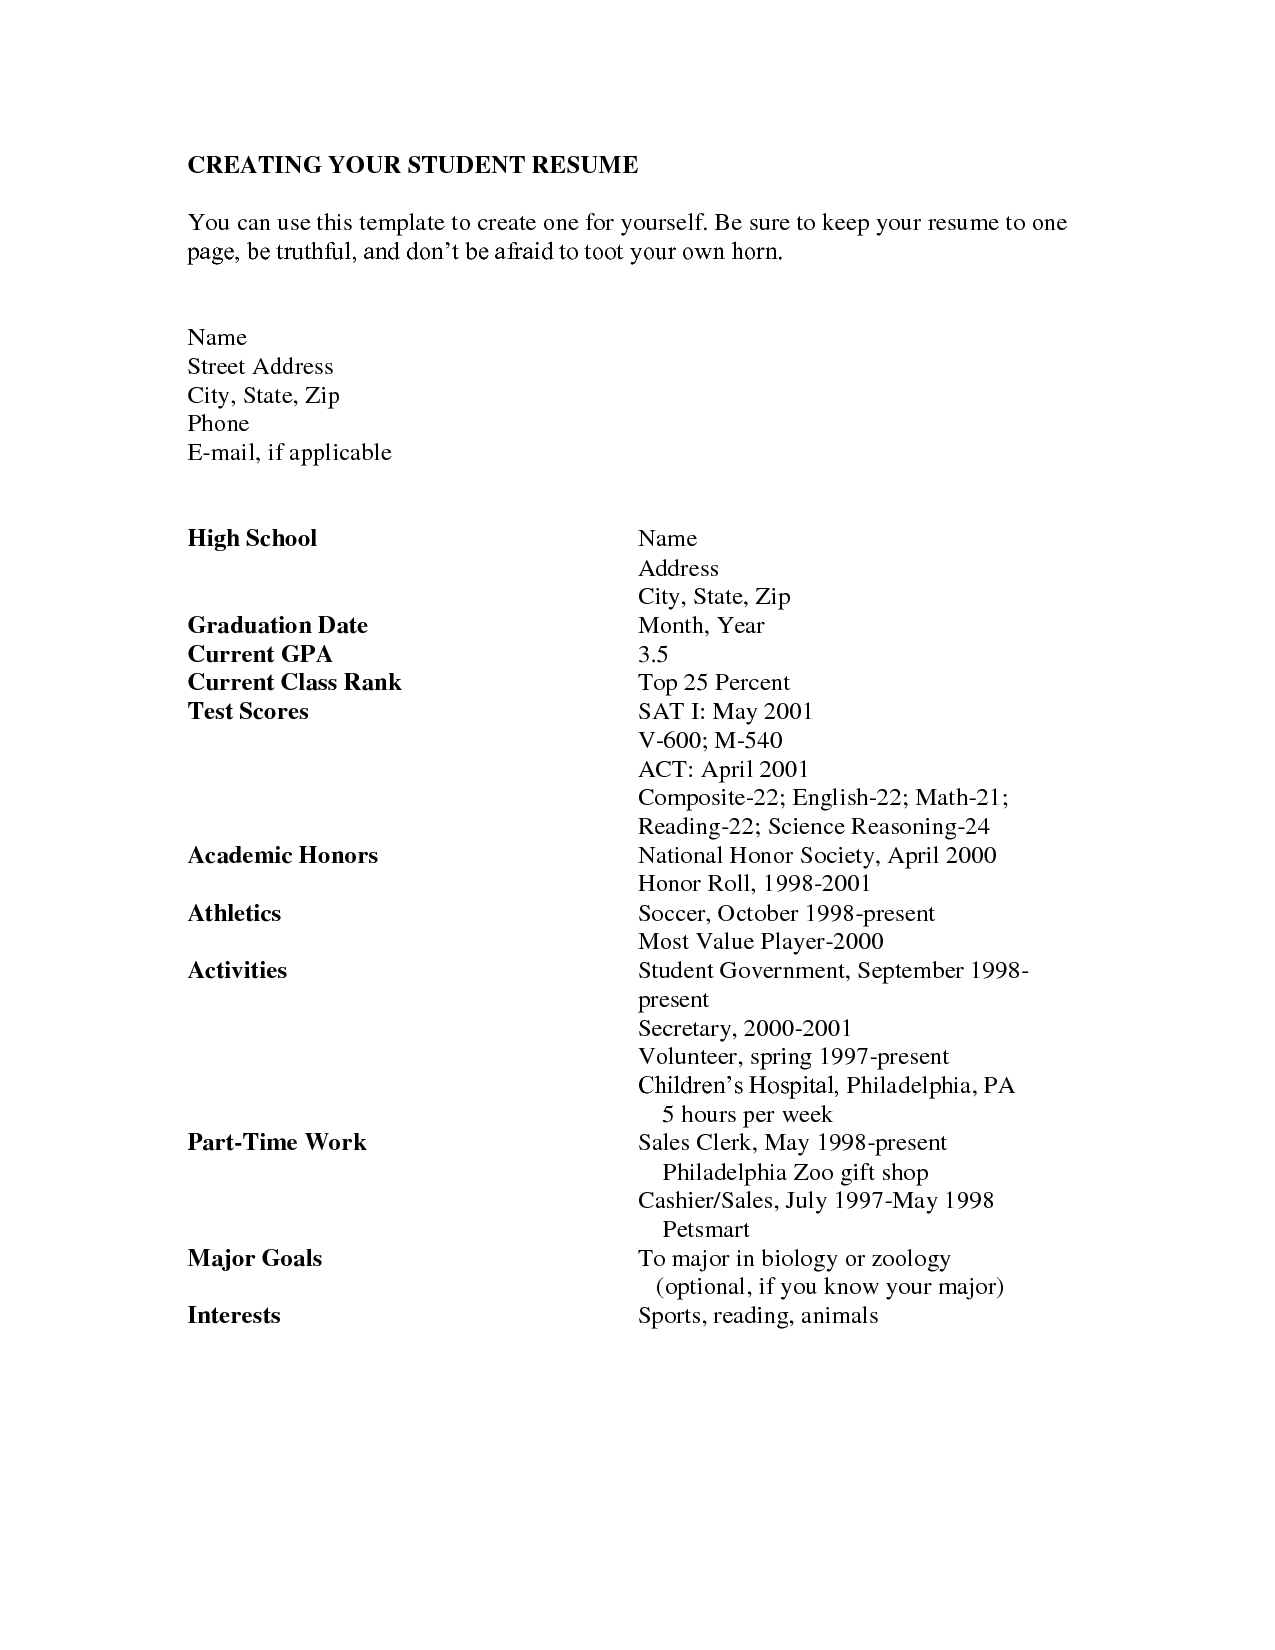 Academic Resume Template Pinjobresume On Resume Career Termplate Free  Pinterest